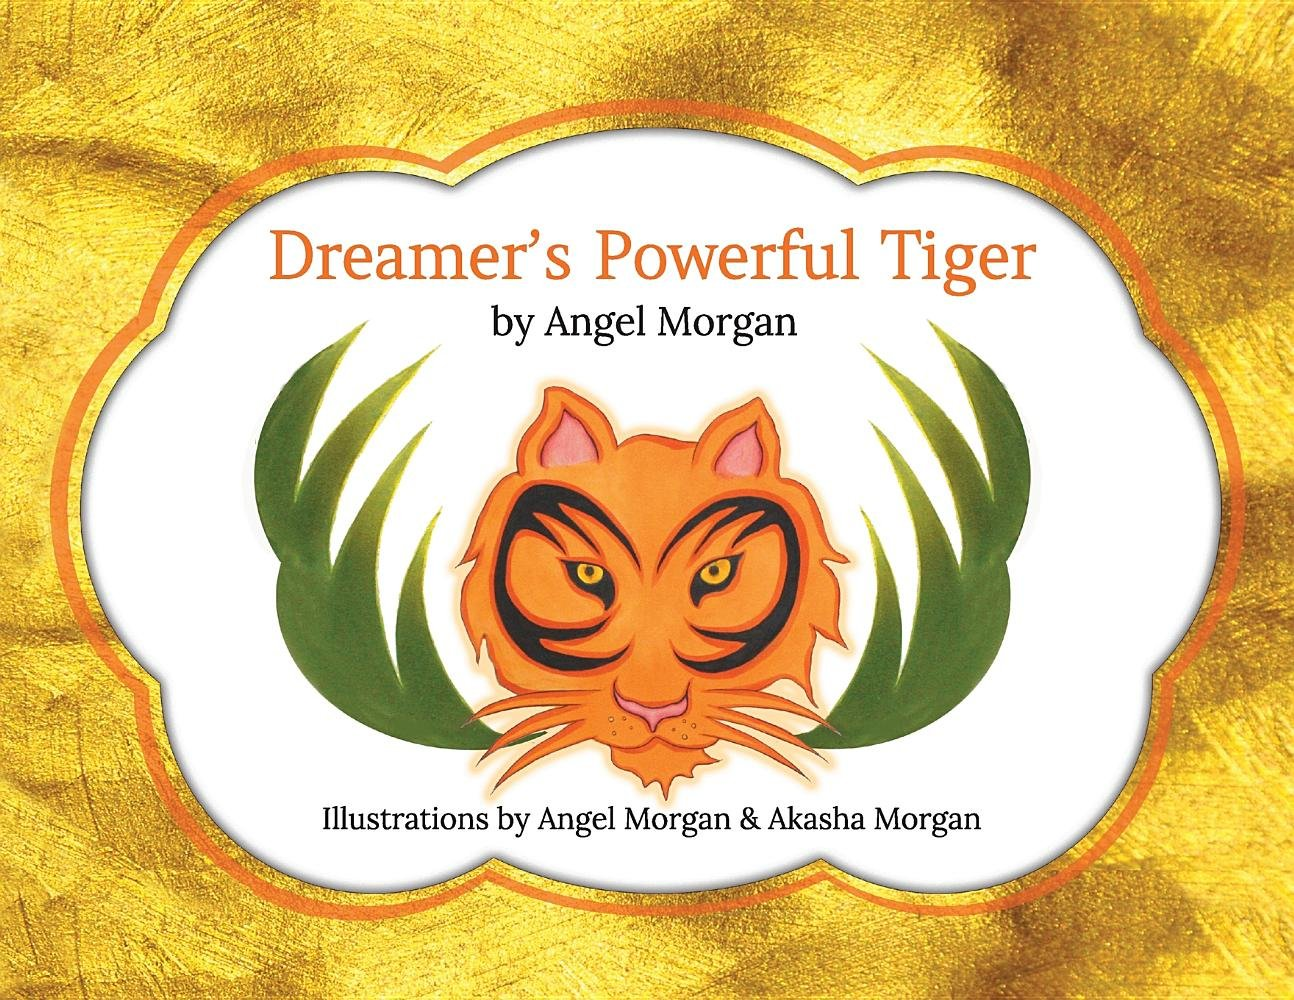 Dreamer's Powerful Tiger: A New Lucid Dreaming Classic for Children and Parents of the 21st Century